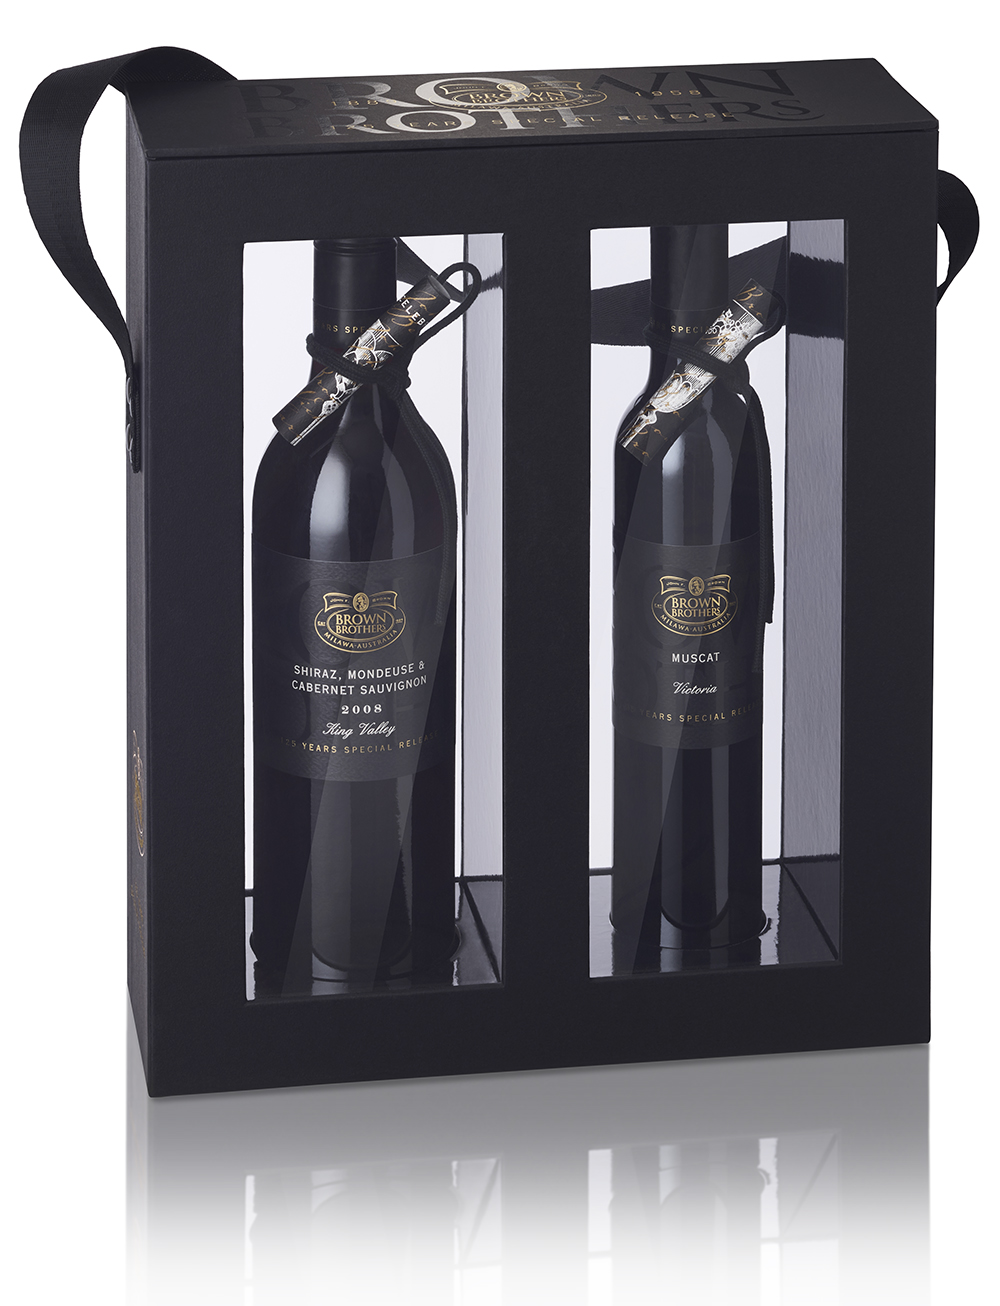 The series of 4 wines were packaged in pairs, in specially designed presentation boxes with matt and gloss varnish effects, magnetised lift out lids and webbing straps.